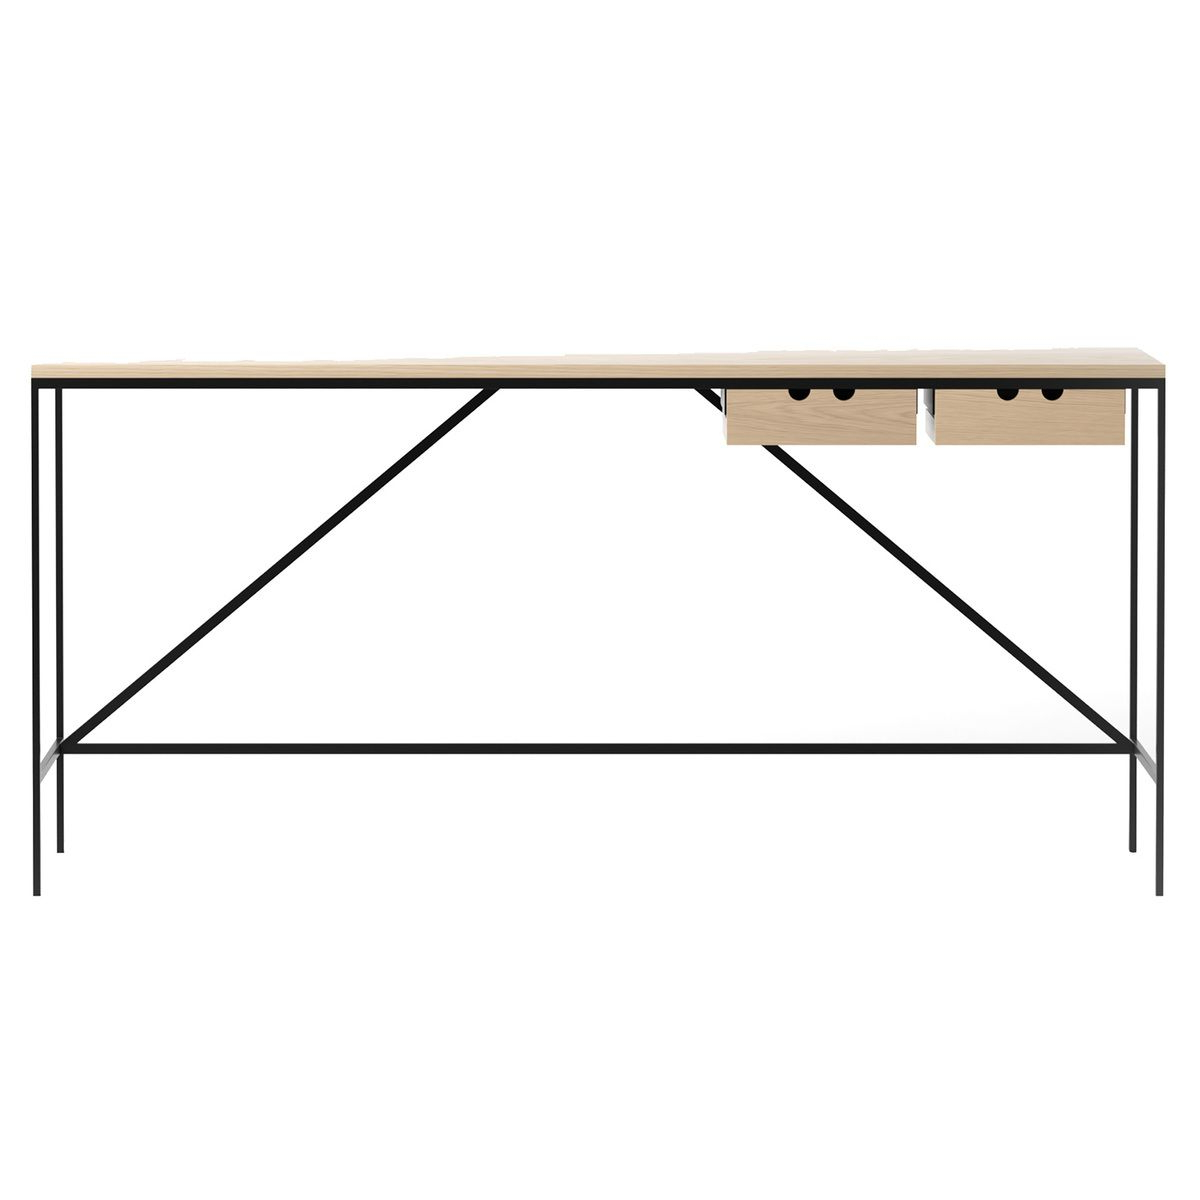 Karakter's 1595 Desk Adds A Dash Of Minimalist Elegance To Inside Most Up To Date Ossu Iron Picnic Benches (View 29 of 30)